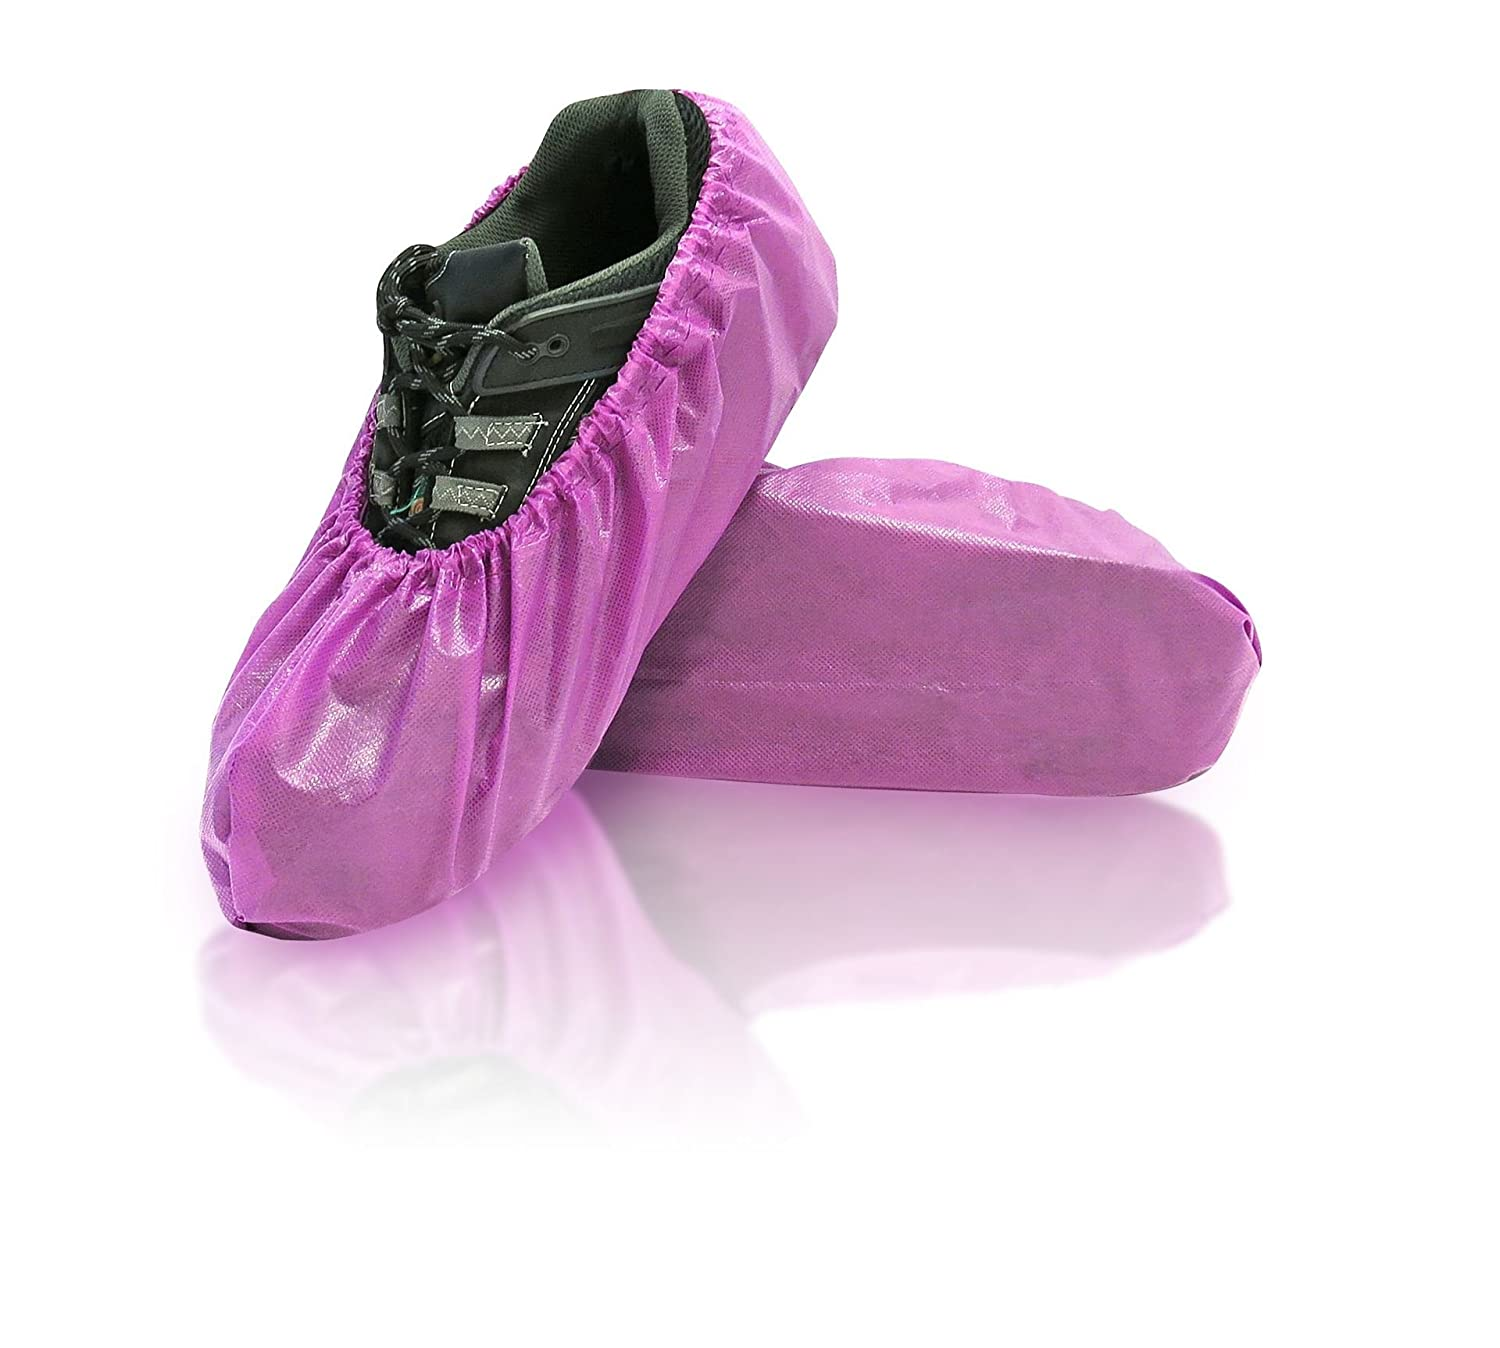 BlueMed SHS-1417-C Lilly Disposable Shoe Covers Purple Polypropylene and polyethylene Fabric 6.89 x 16.54 Universal Pack of 300 6.89 x 16.54